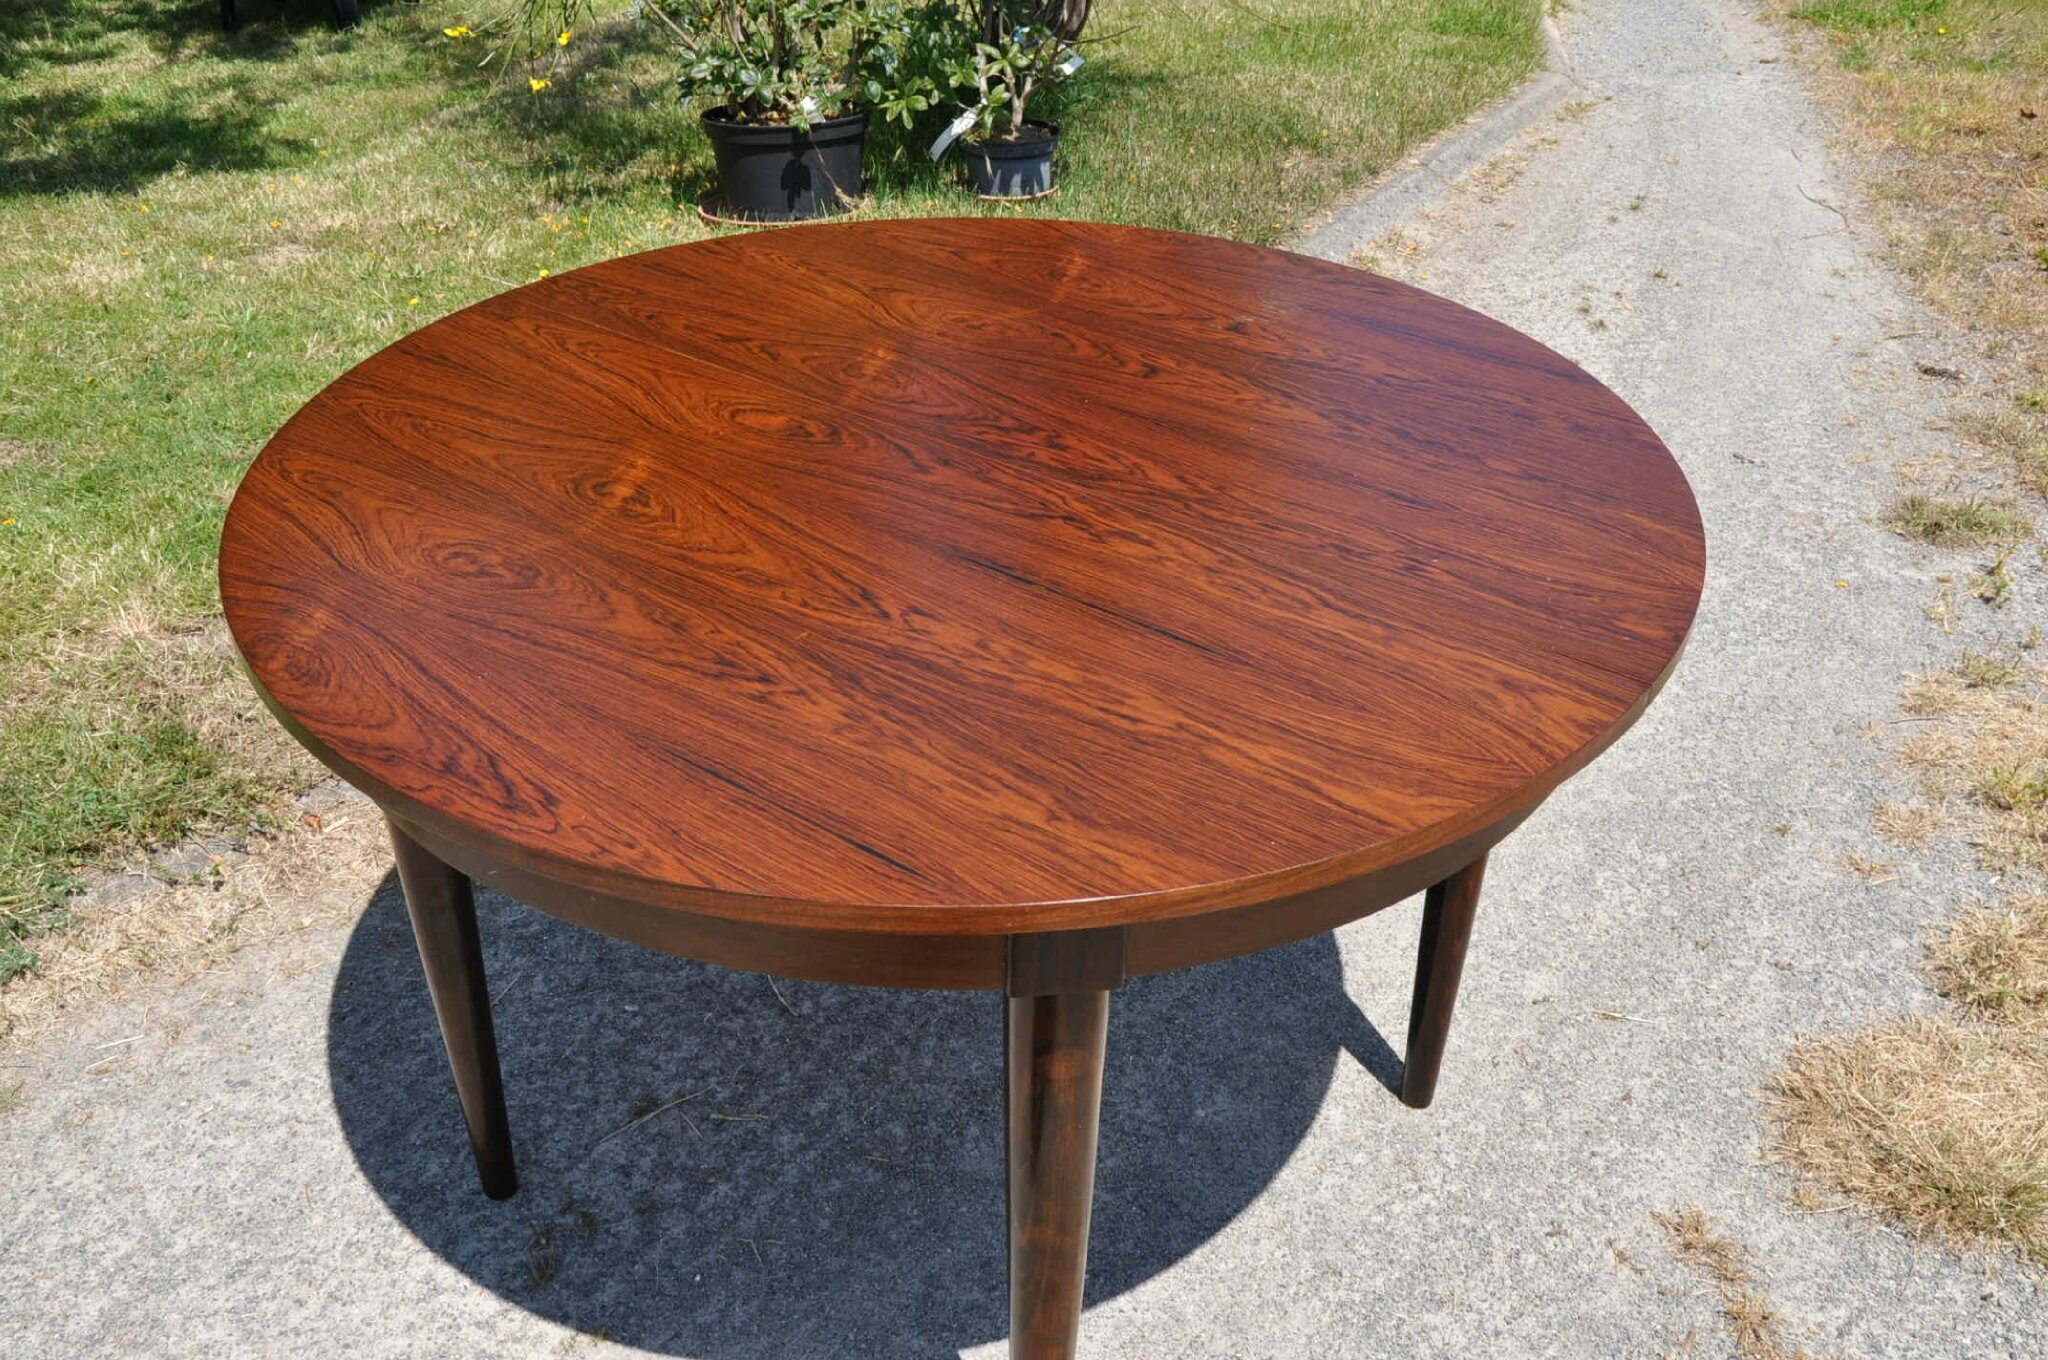 Table Ronde Scandinave Rallonge Table Ronde De Type Scandinave Article Vendu Antiquités Du